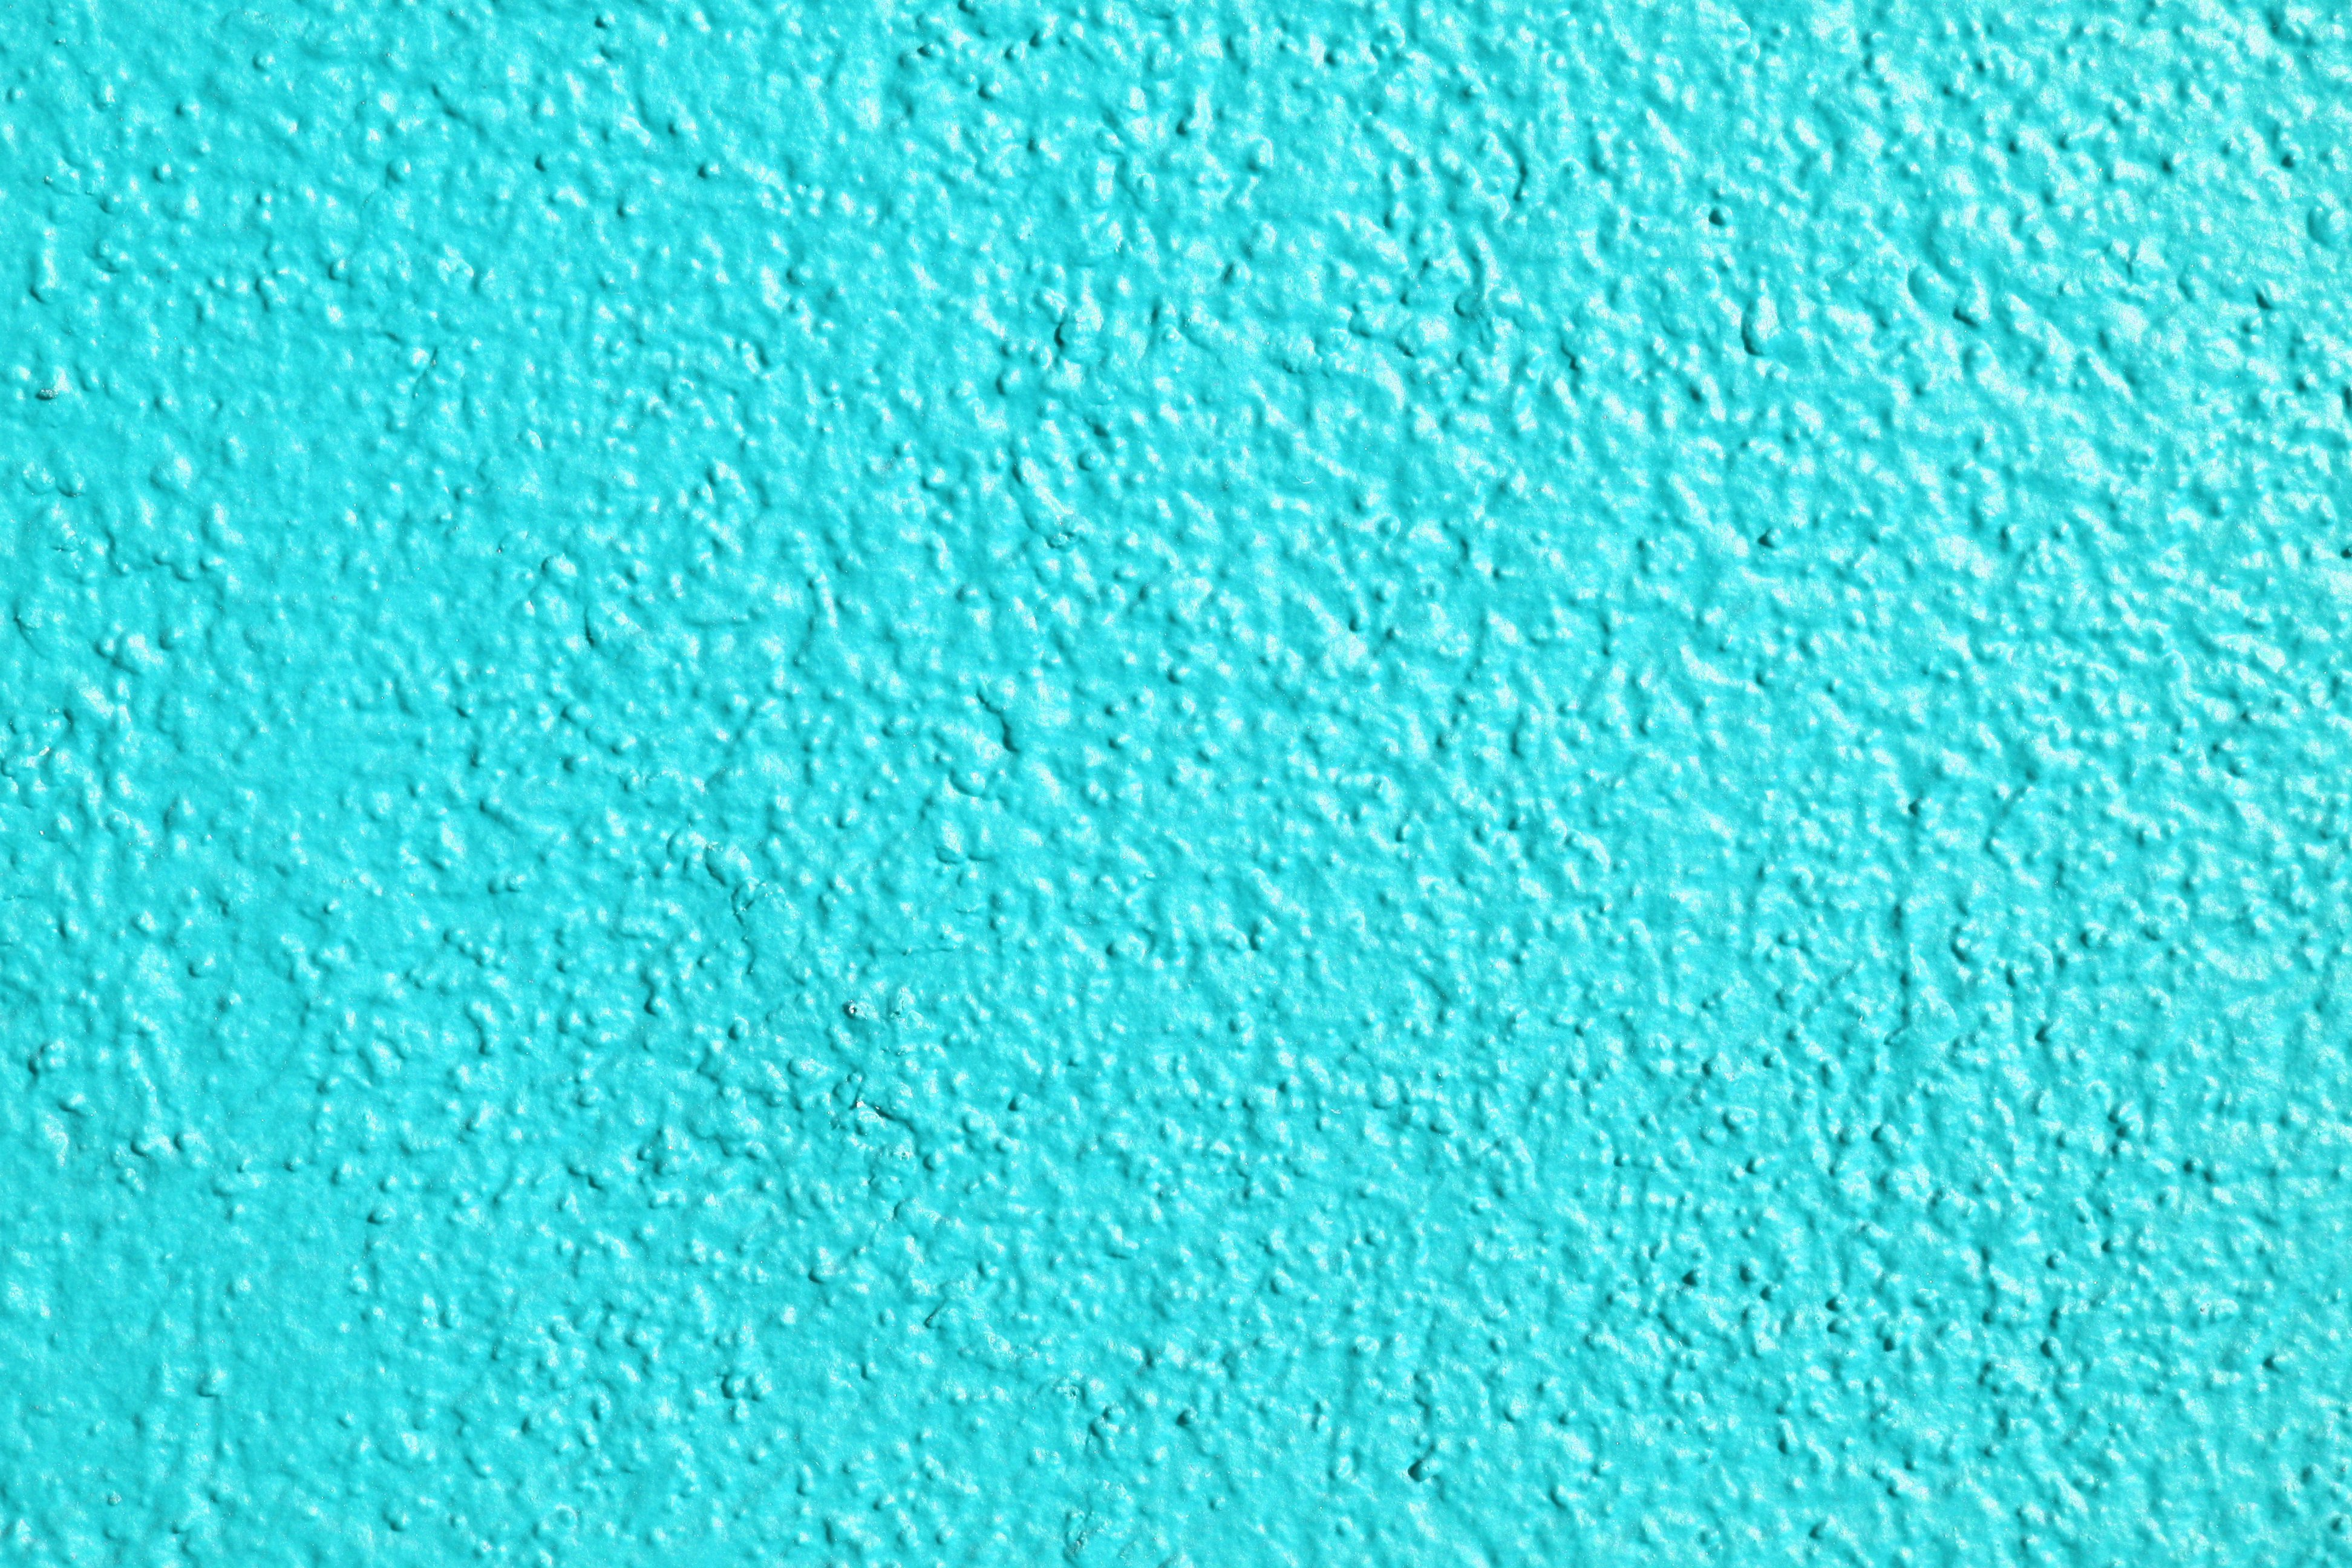 The Texture Of Teal And Turquoise: Teal Painted Wall Texture Picture